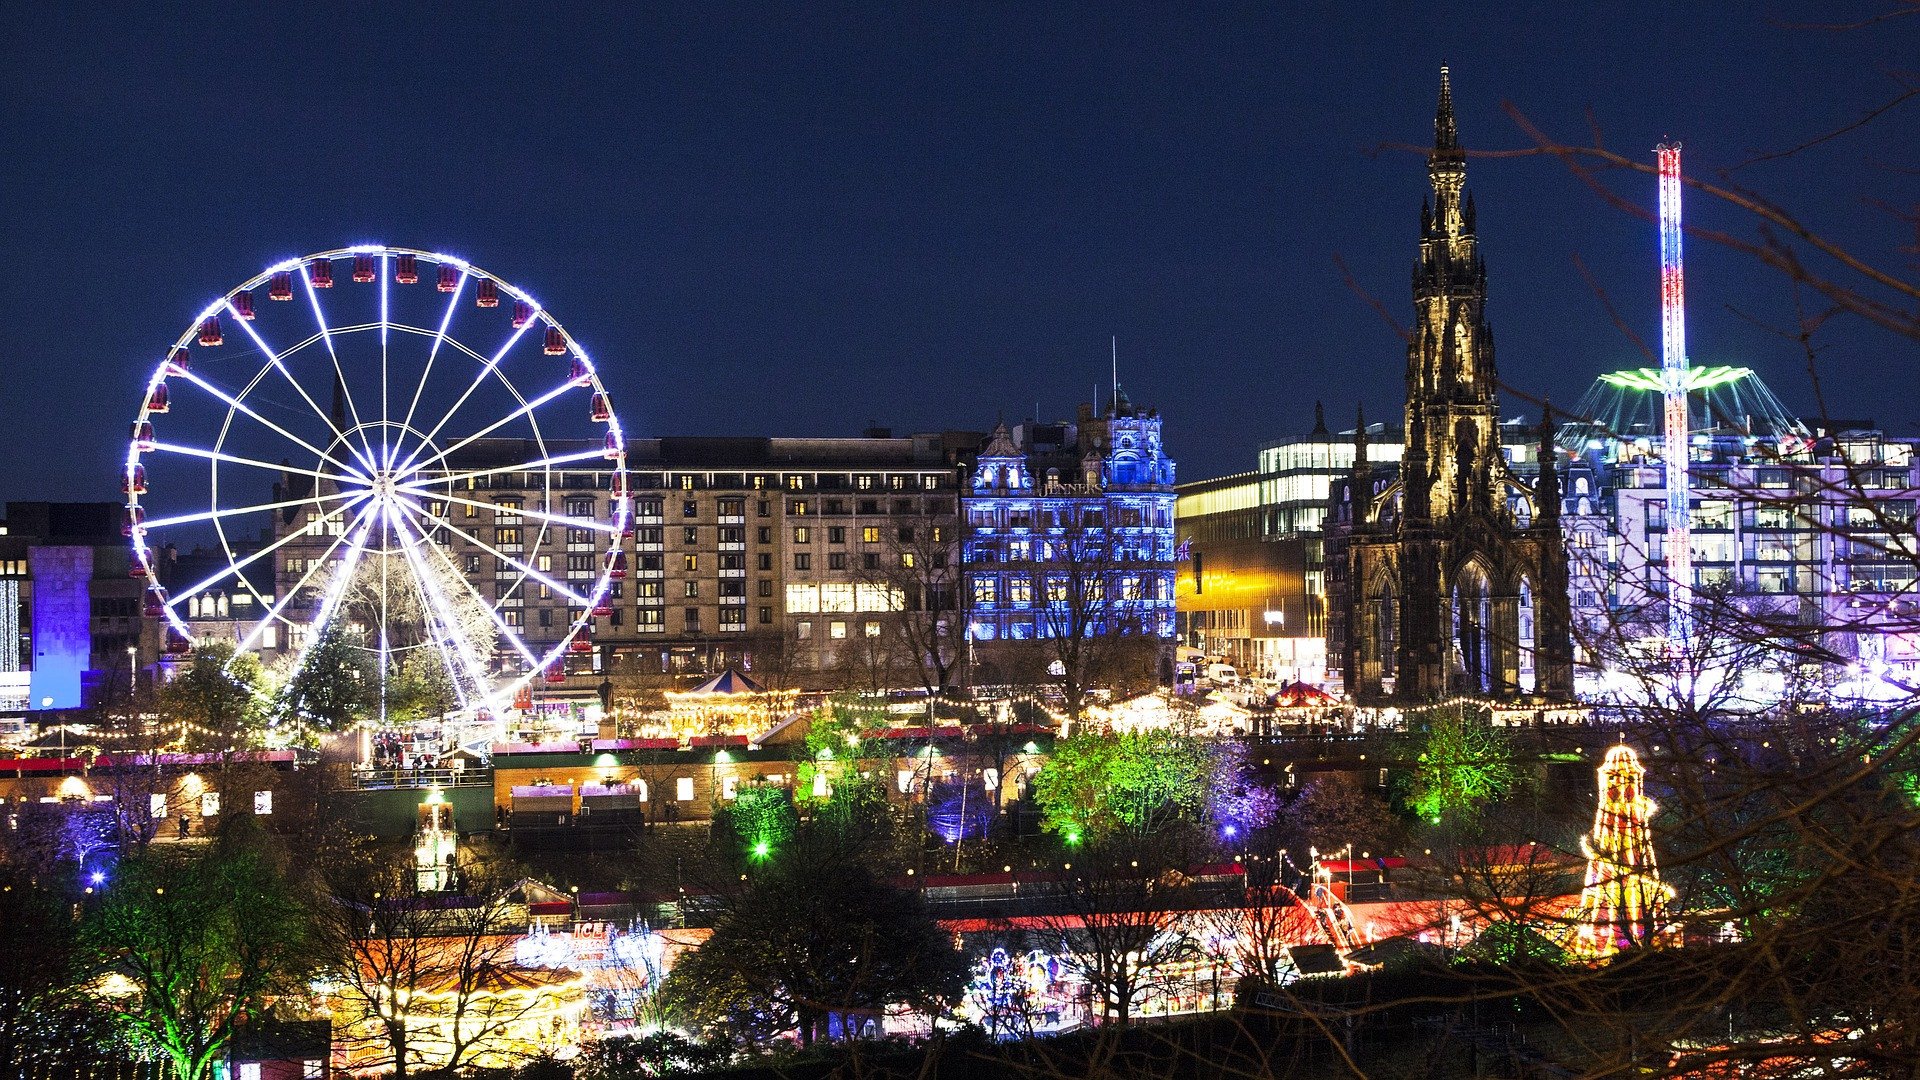 Edinburgh Christmas Market, Scotland